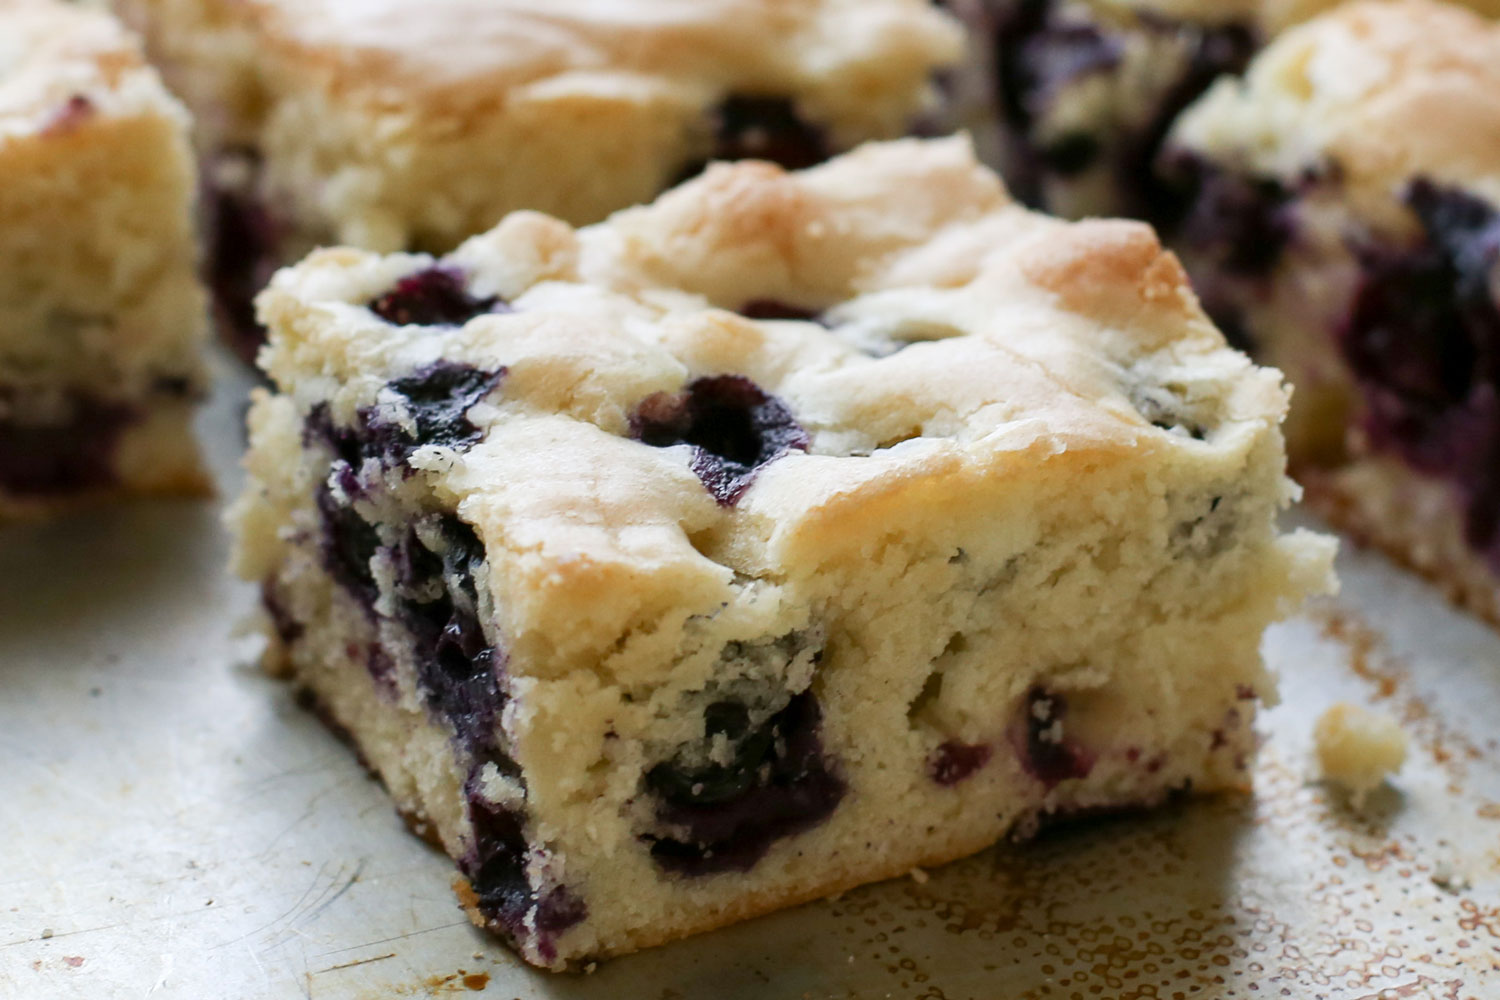 Barefeet In The Kitchen's Top 10 Recipes for 2014 - Blueberry Snack Cake